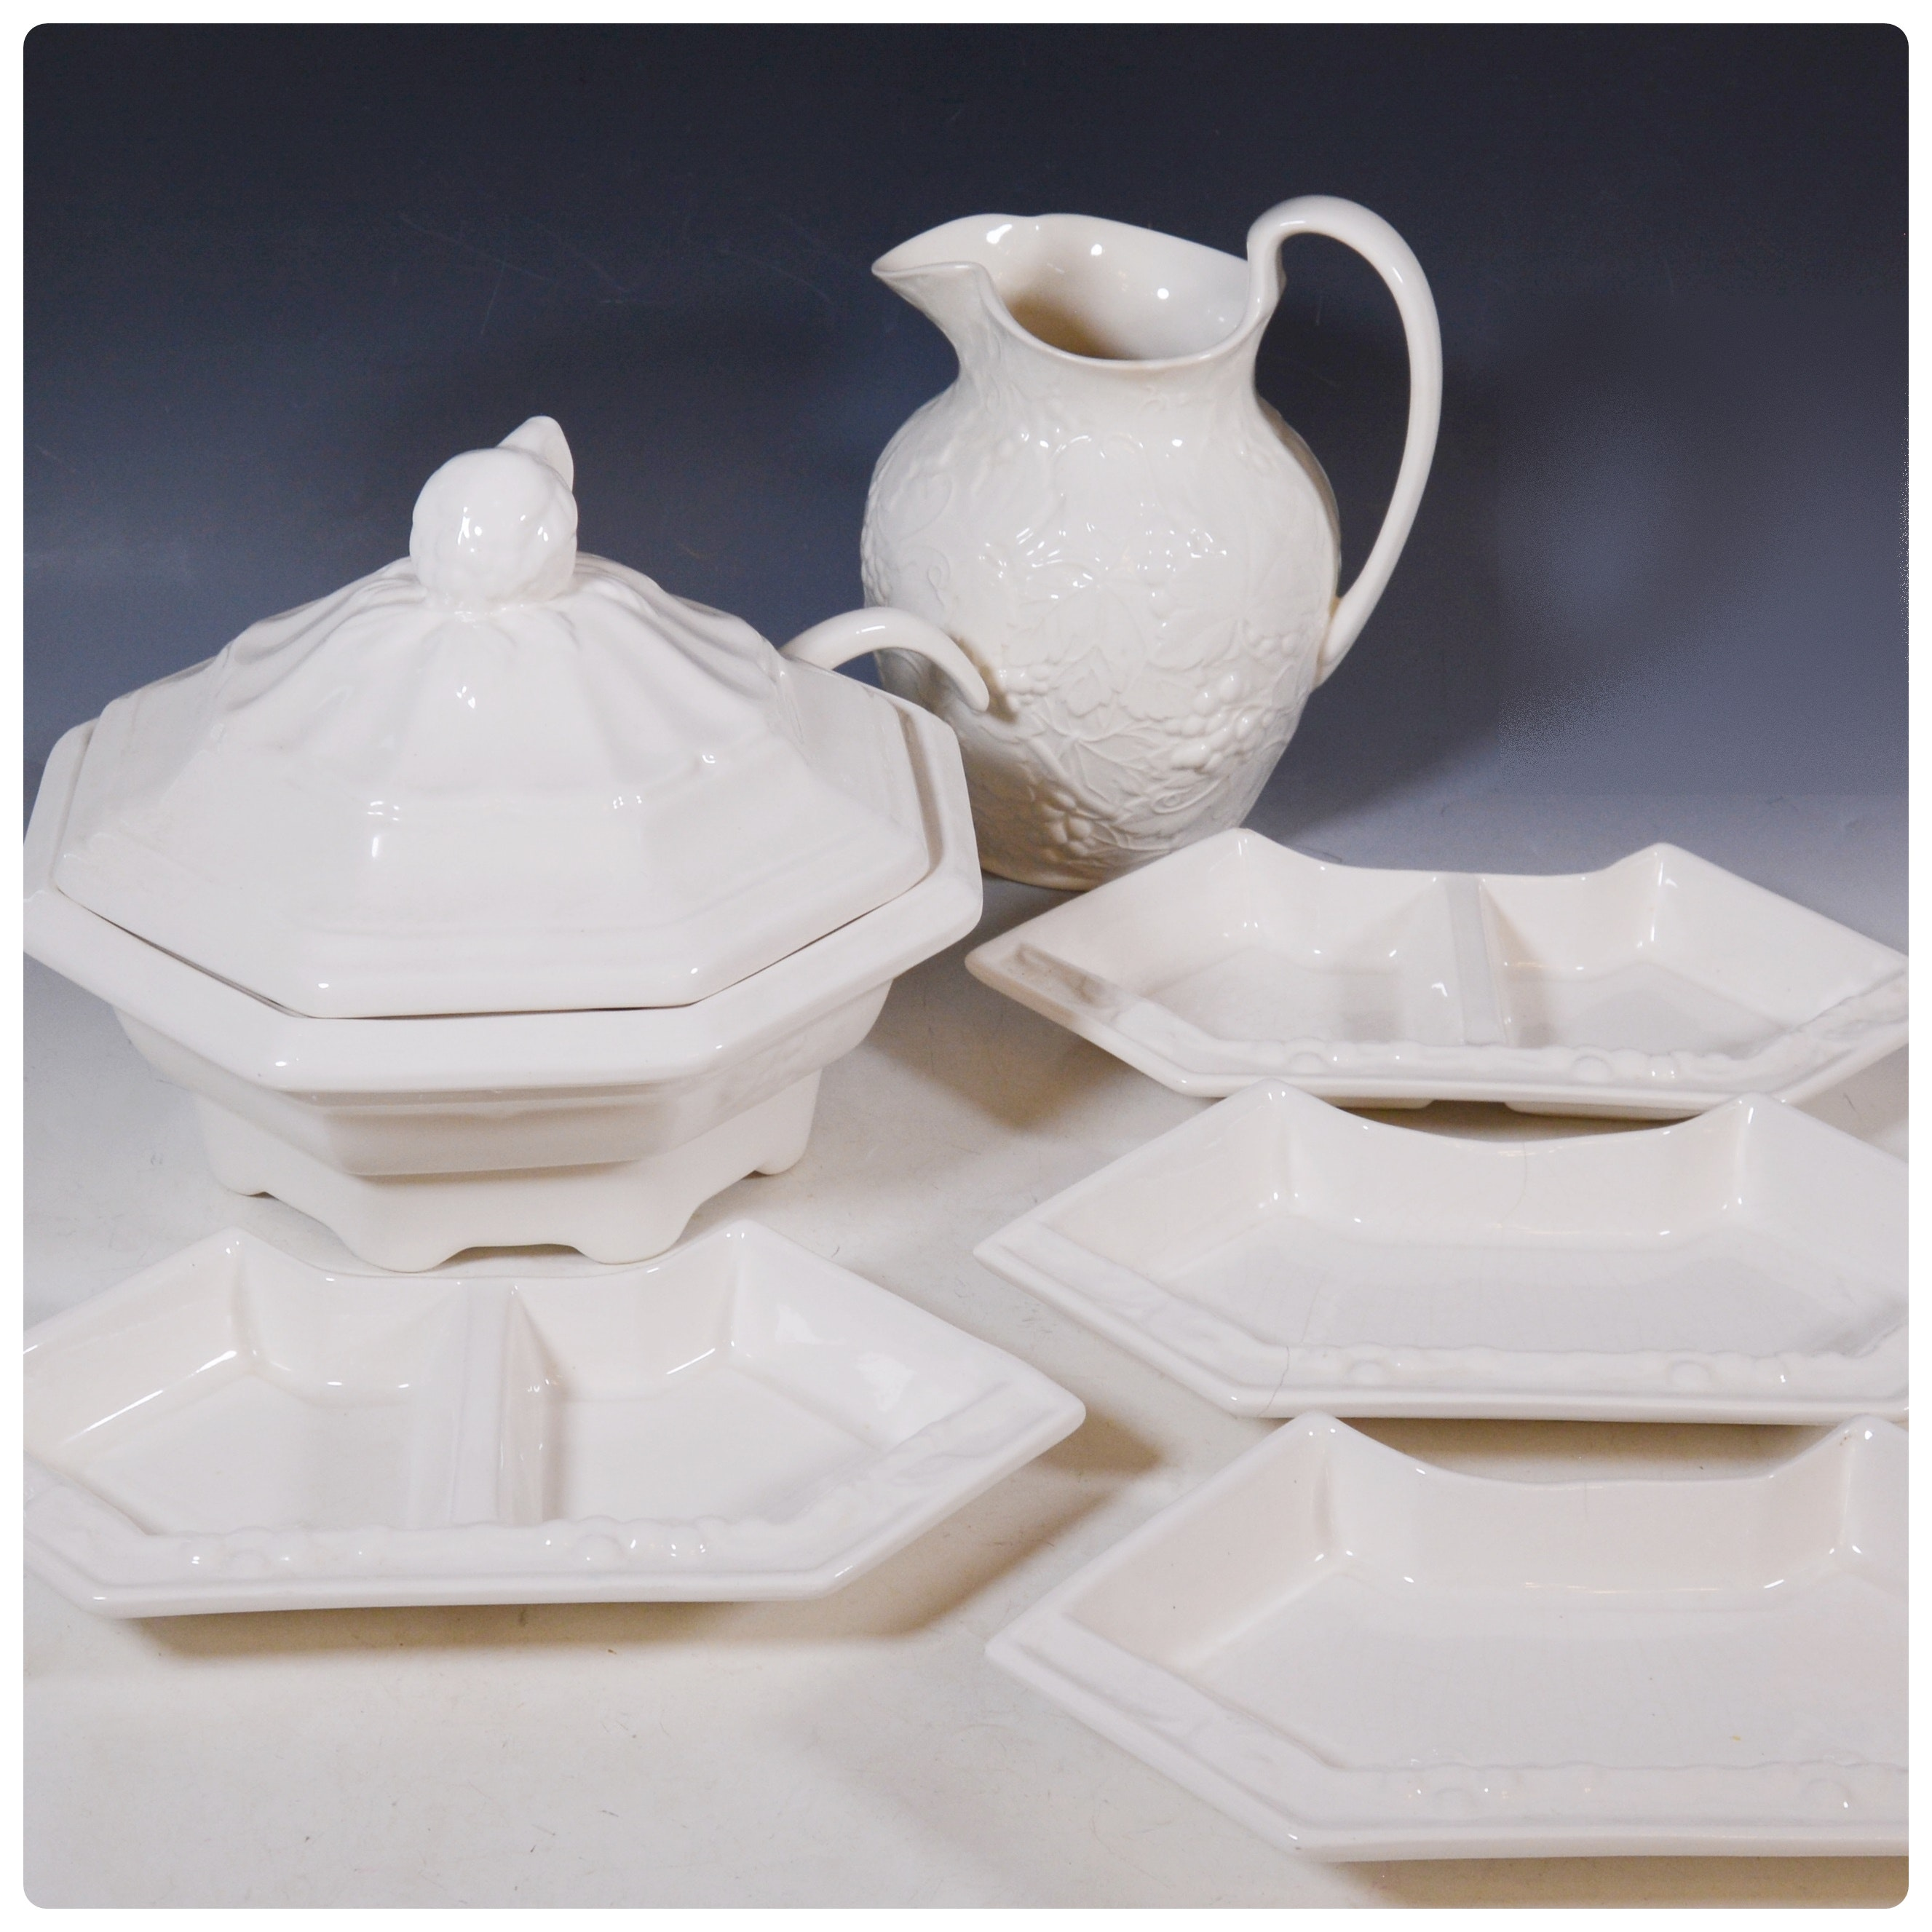 Wedgwood Pitcher and Other Off-White Porcelain Tureen and Bowls